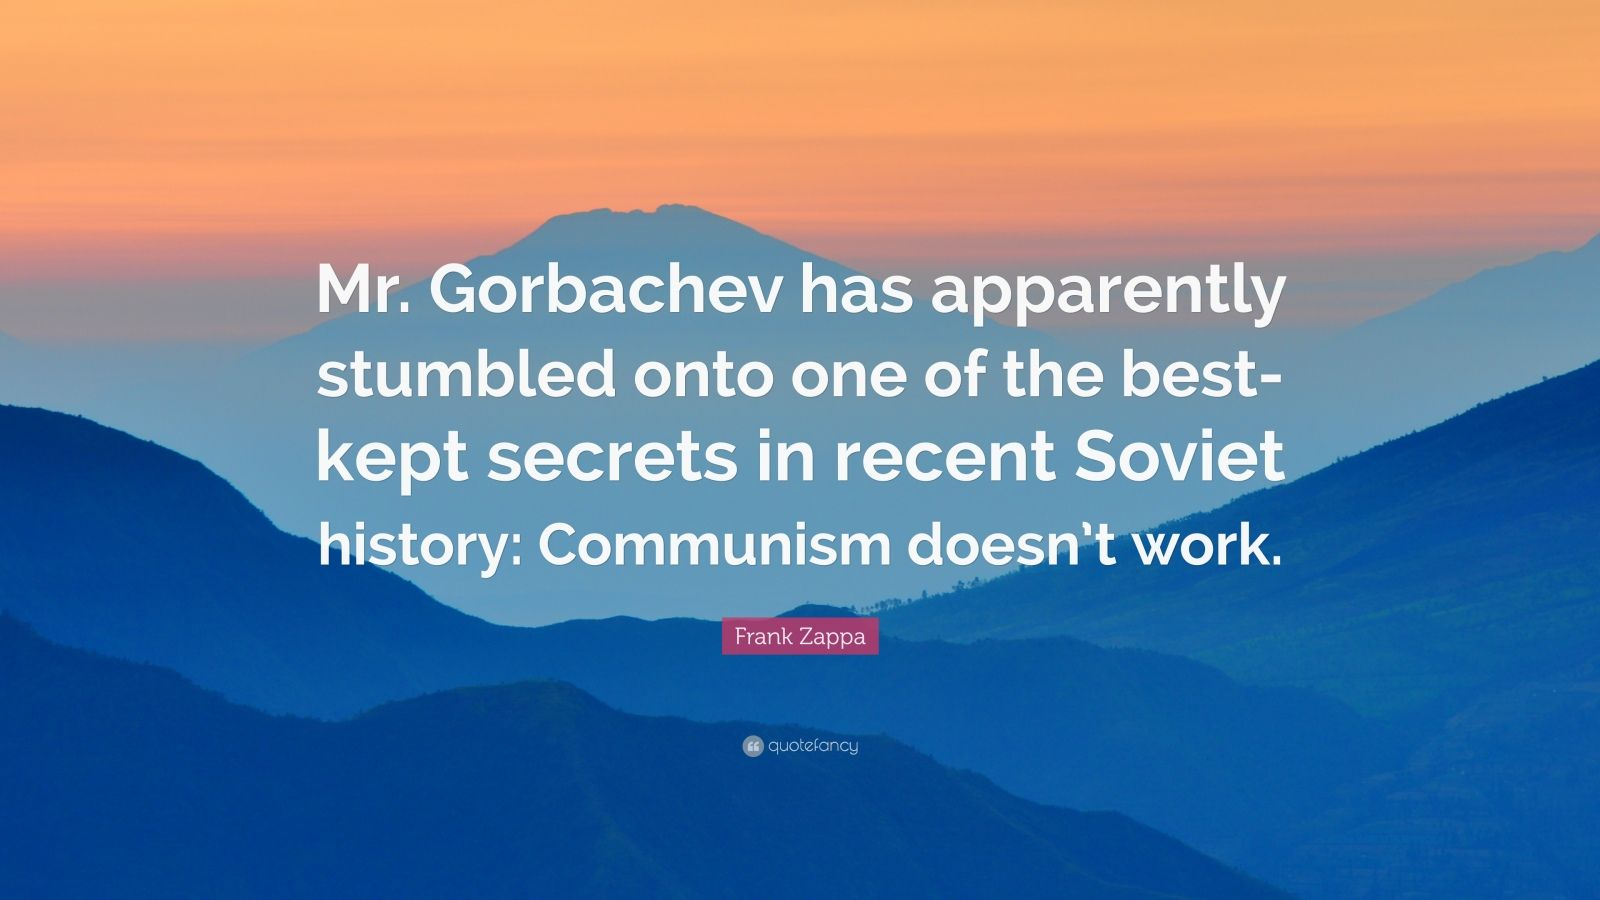 """Frank Zappa Quote: """"Mr. Gorbachev has apparently stumbled onto one of the best-kept secrets in recent Soviet history: Communism doesn't work."""""""